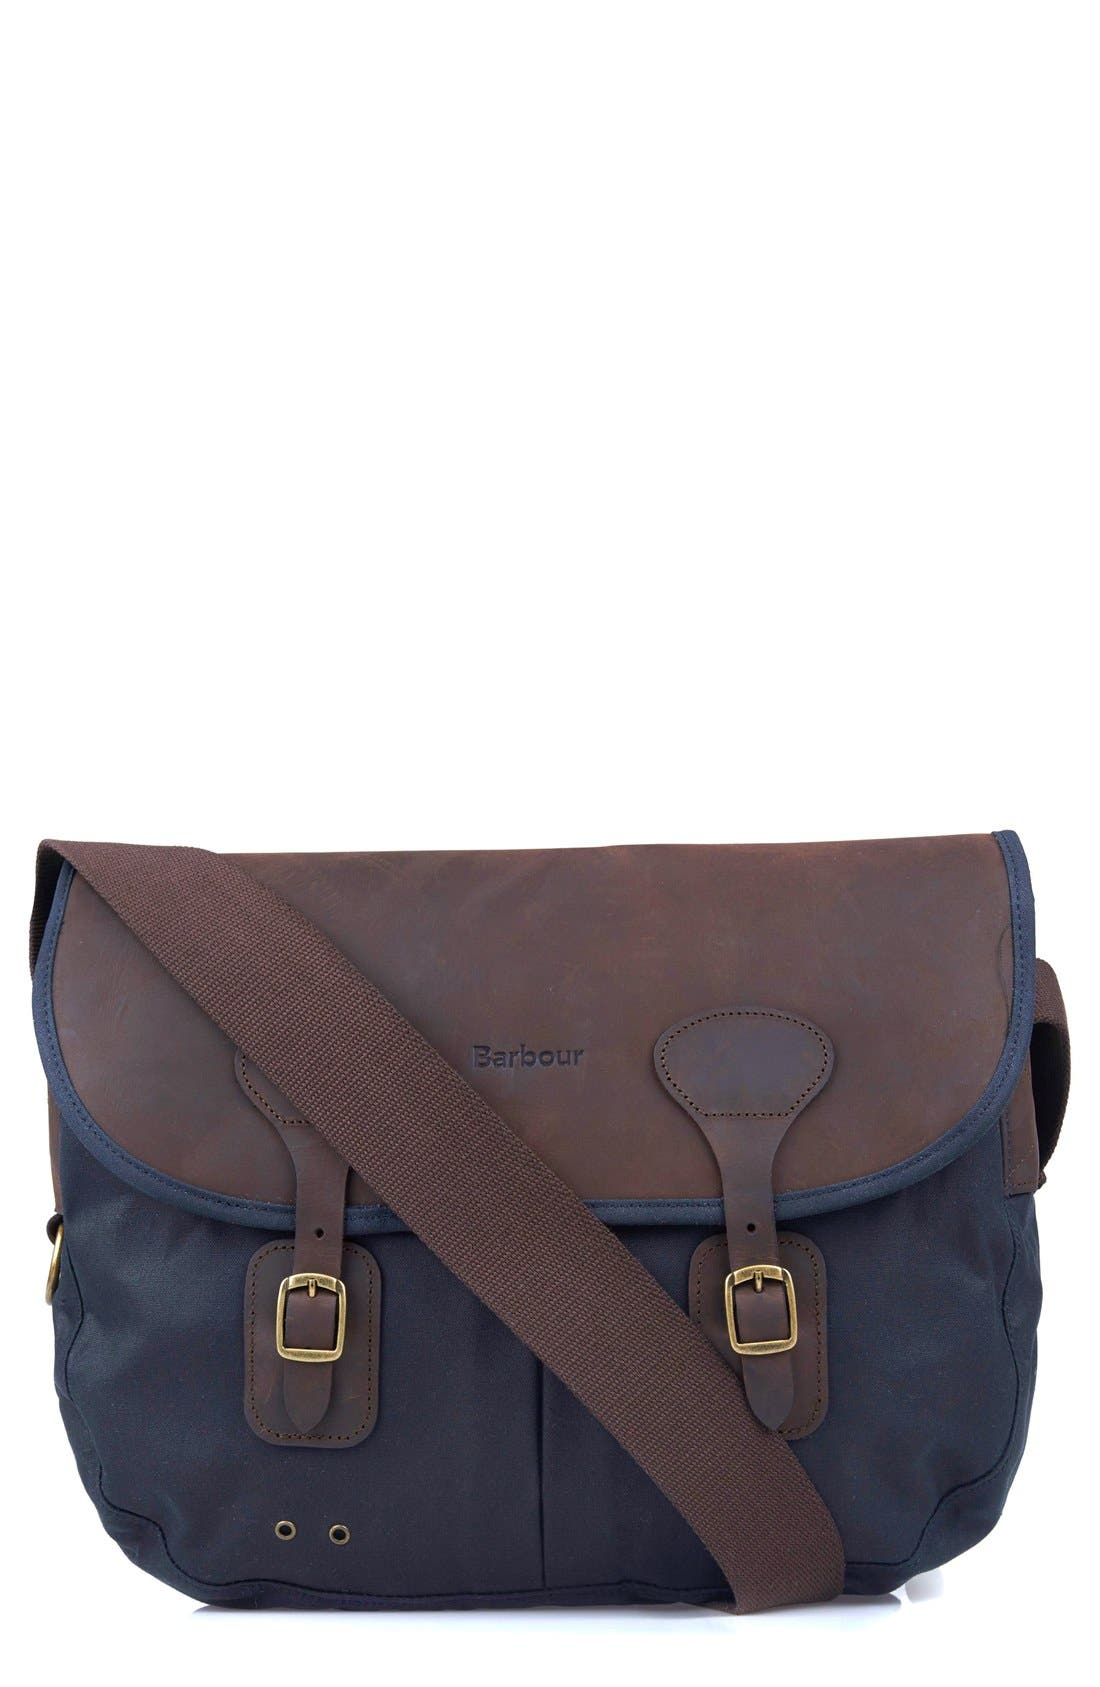 Waxed Canvas Tarras Bag,                             Main thumbnail 1, color,                             Navy